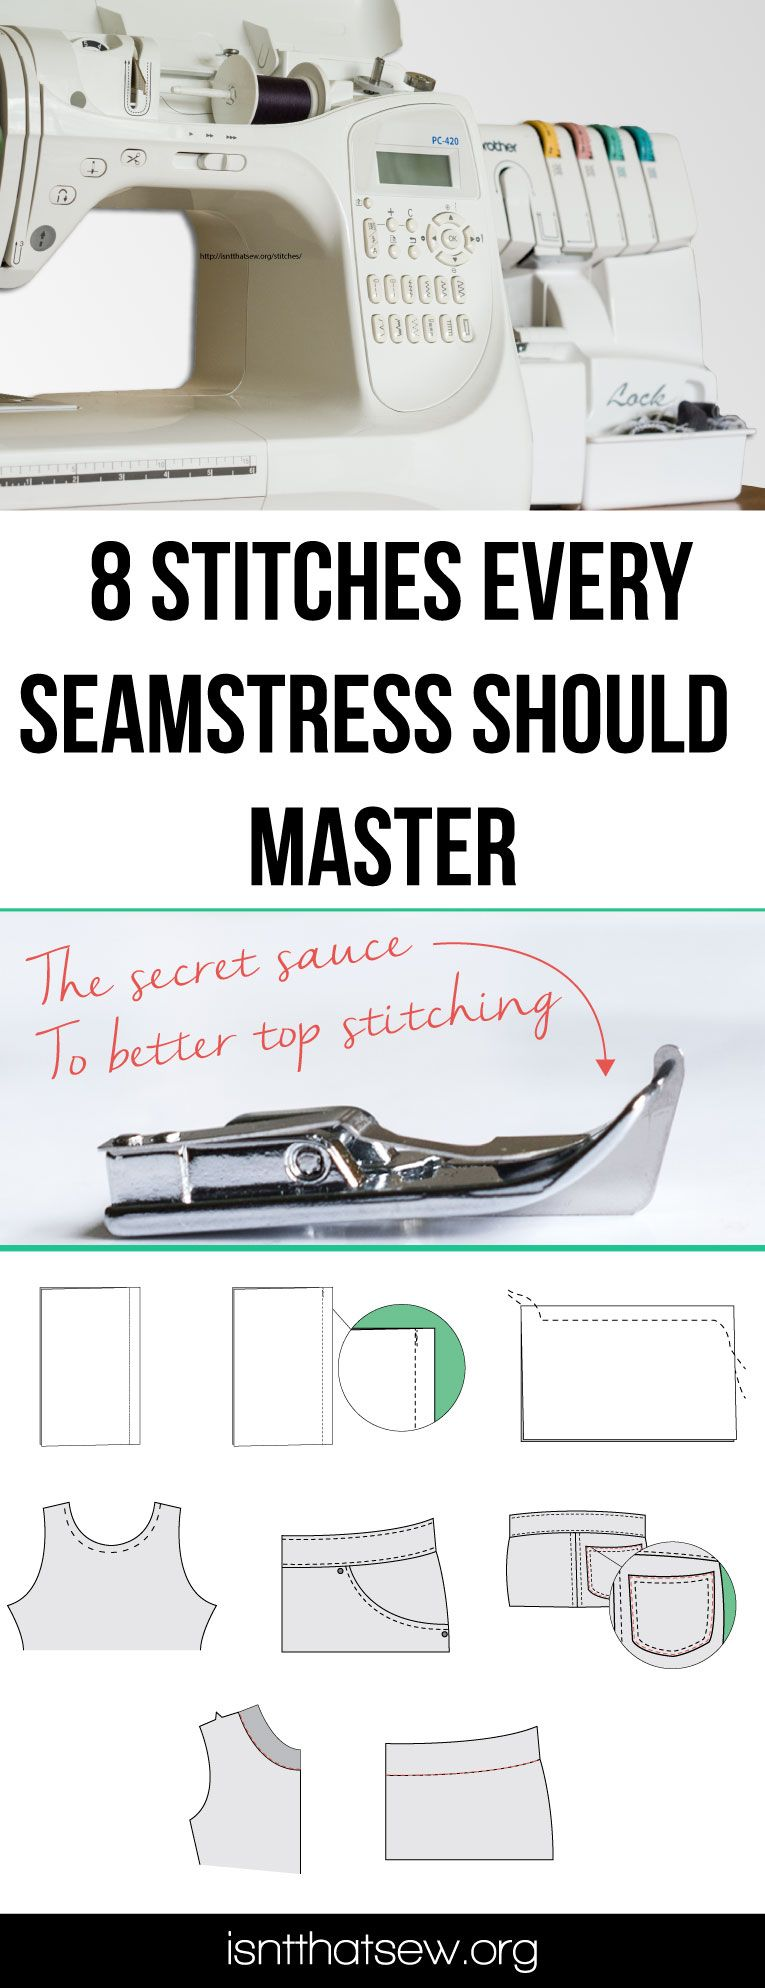 8 Basic sewing stitches every seamstress should master #sewingtechniques